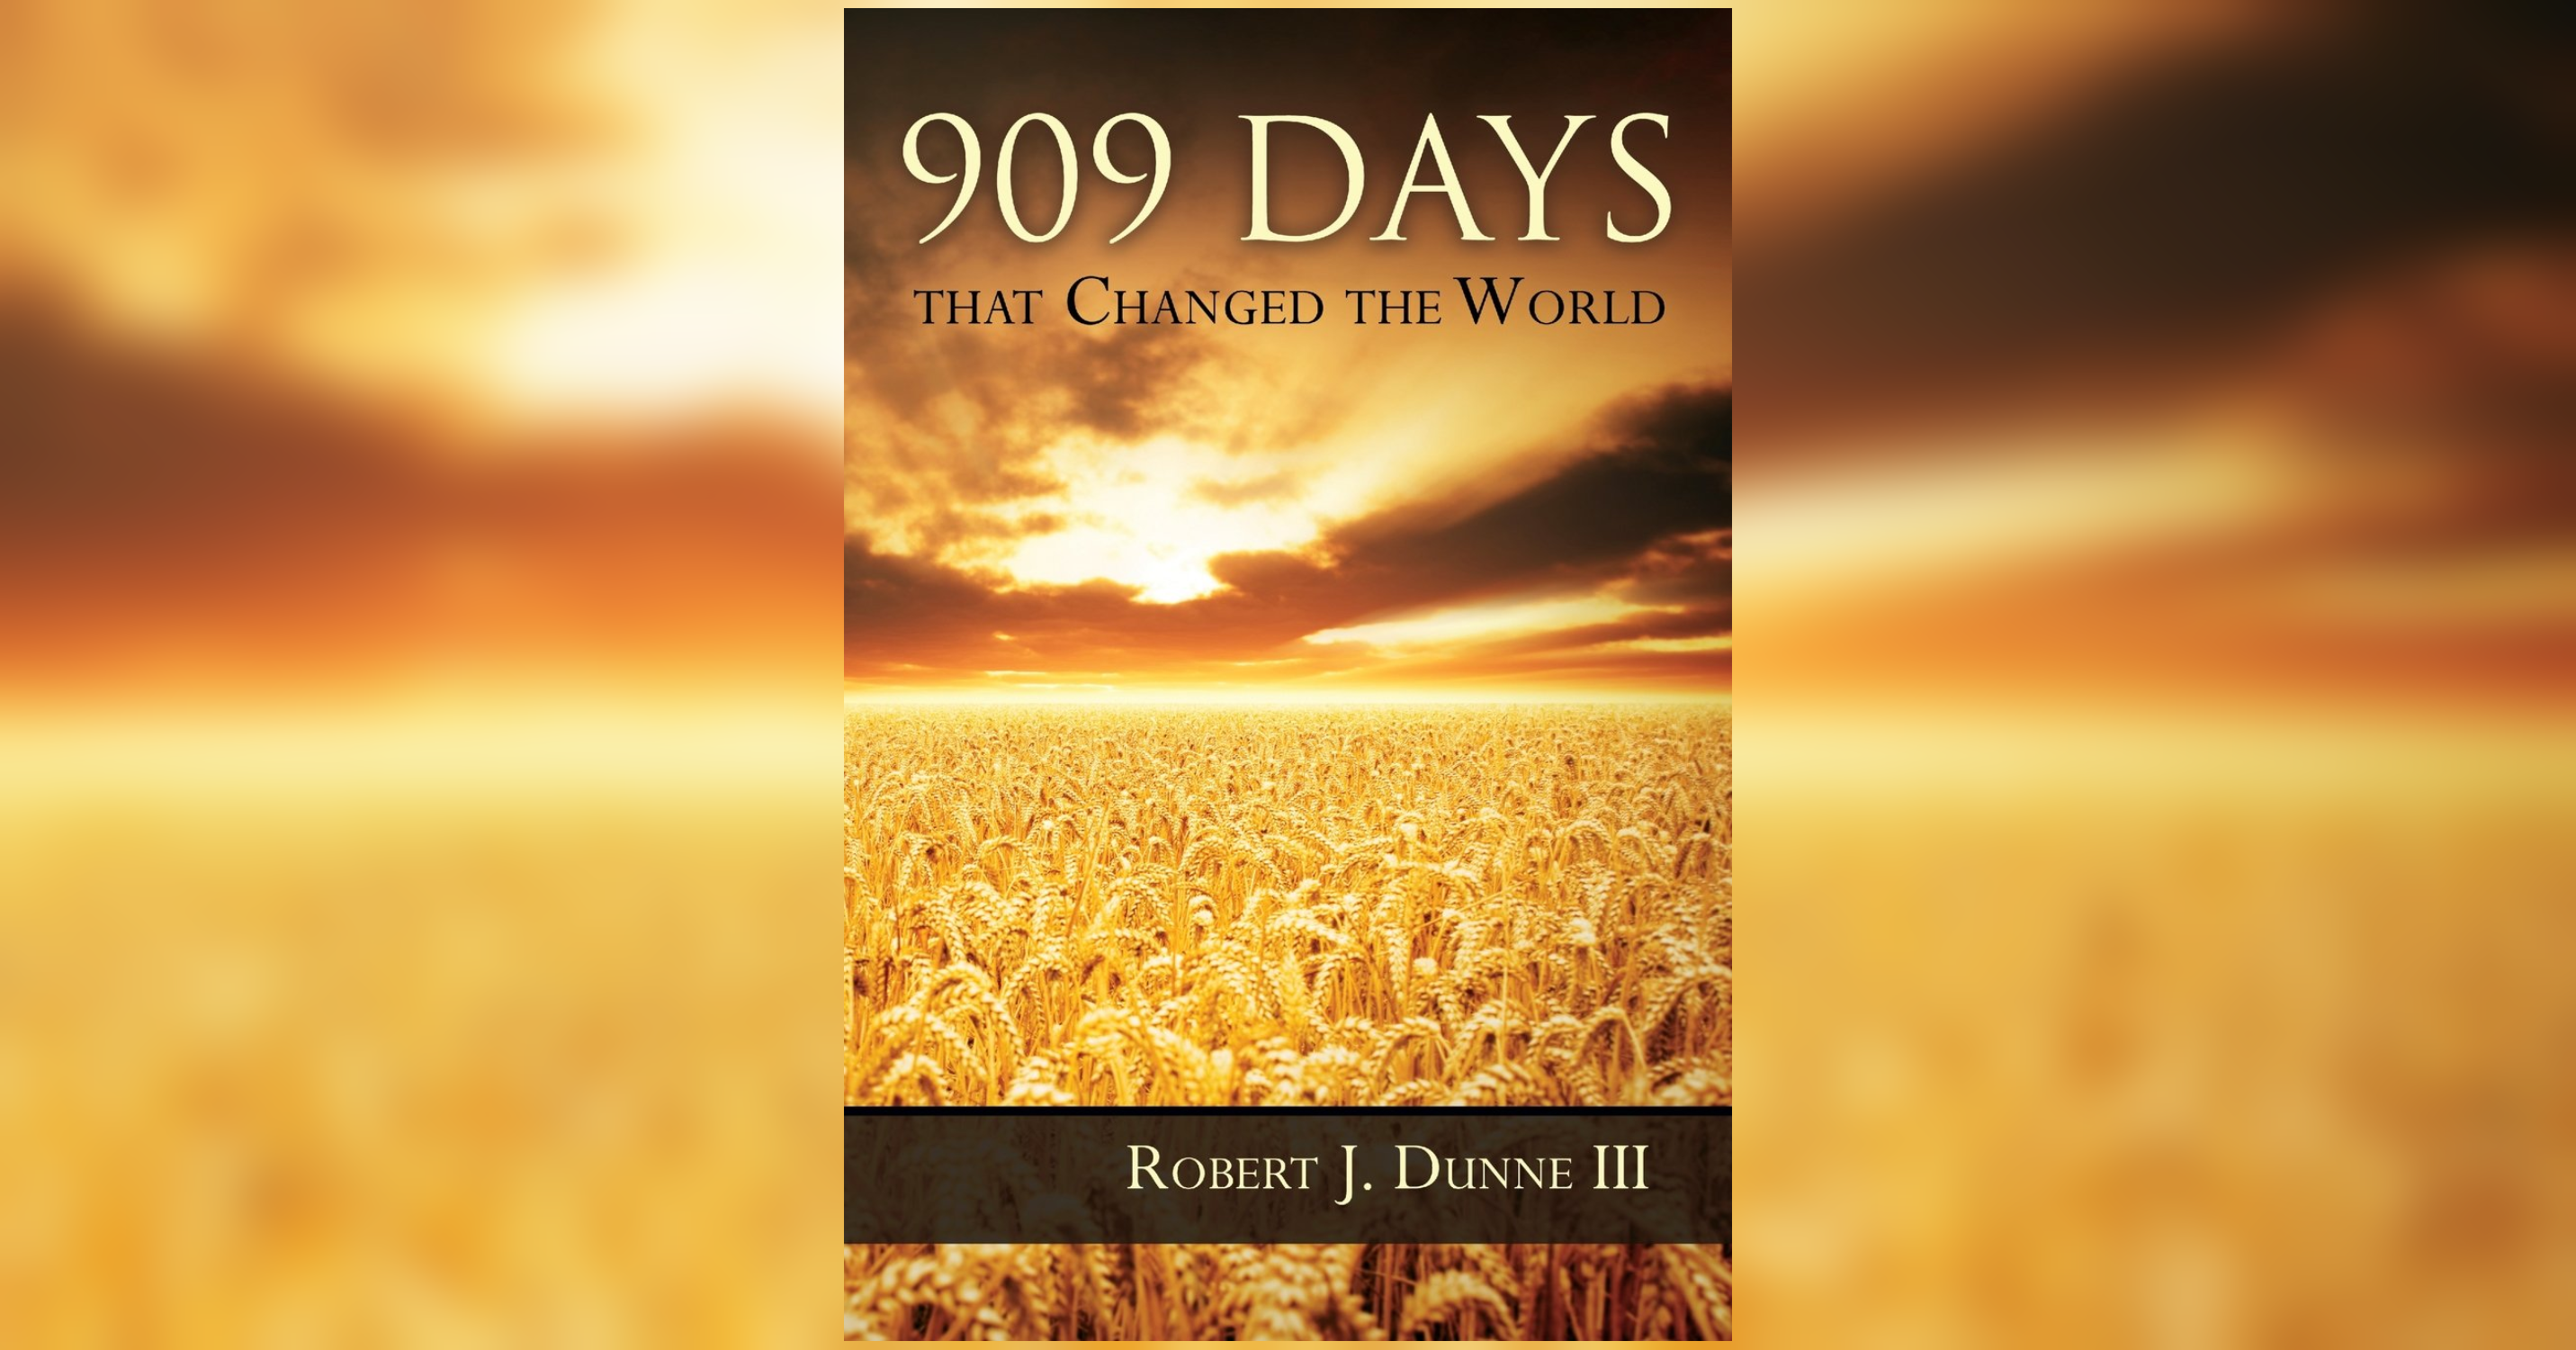 909 Days that Changed the World: The First Disciples